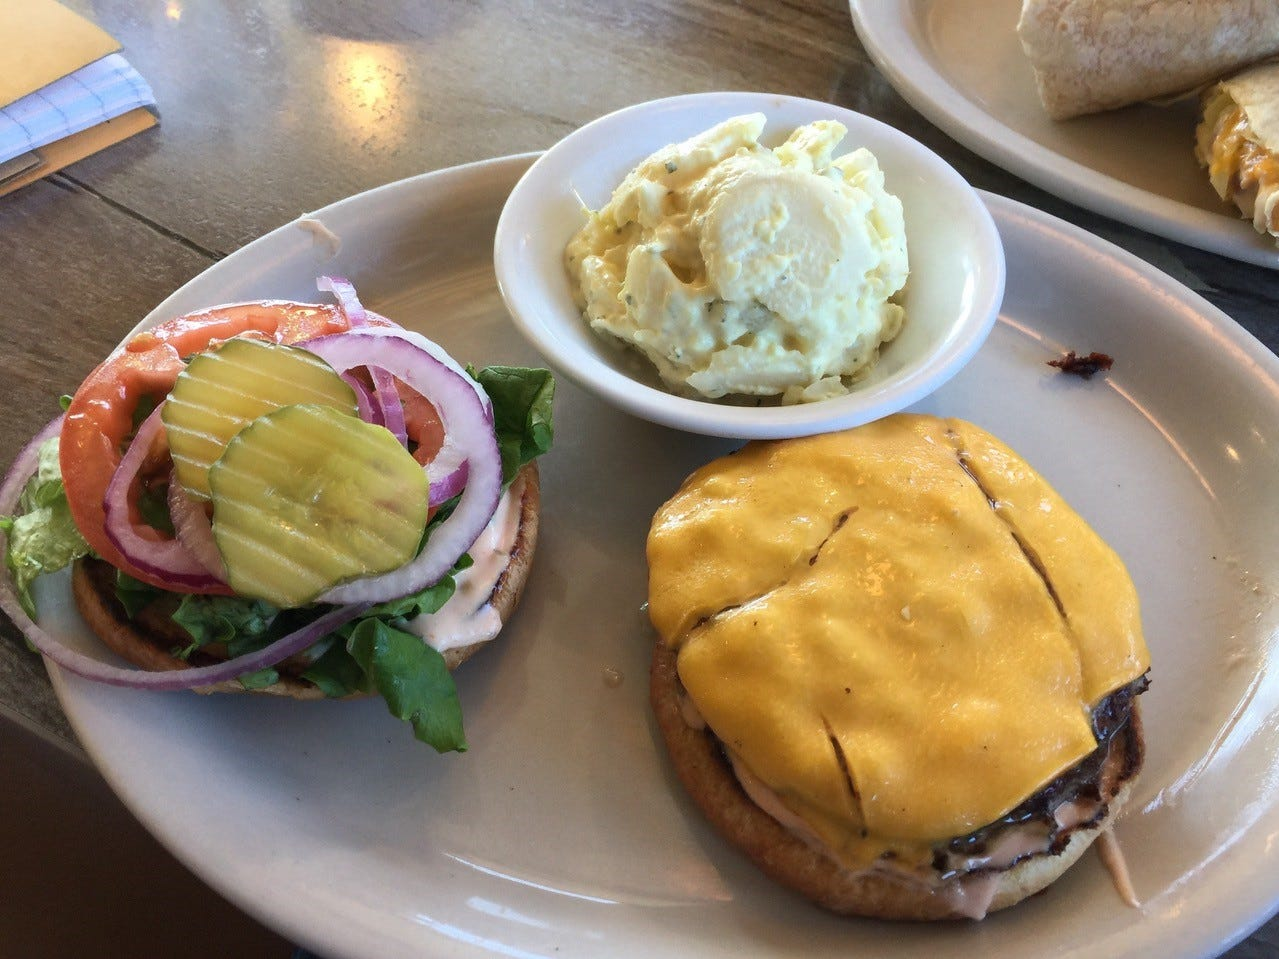 The $7.99 quarter-pound cheese burger on the seniors lunch menu at Jeff's California Cattle Company.